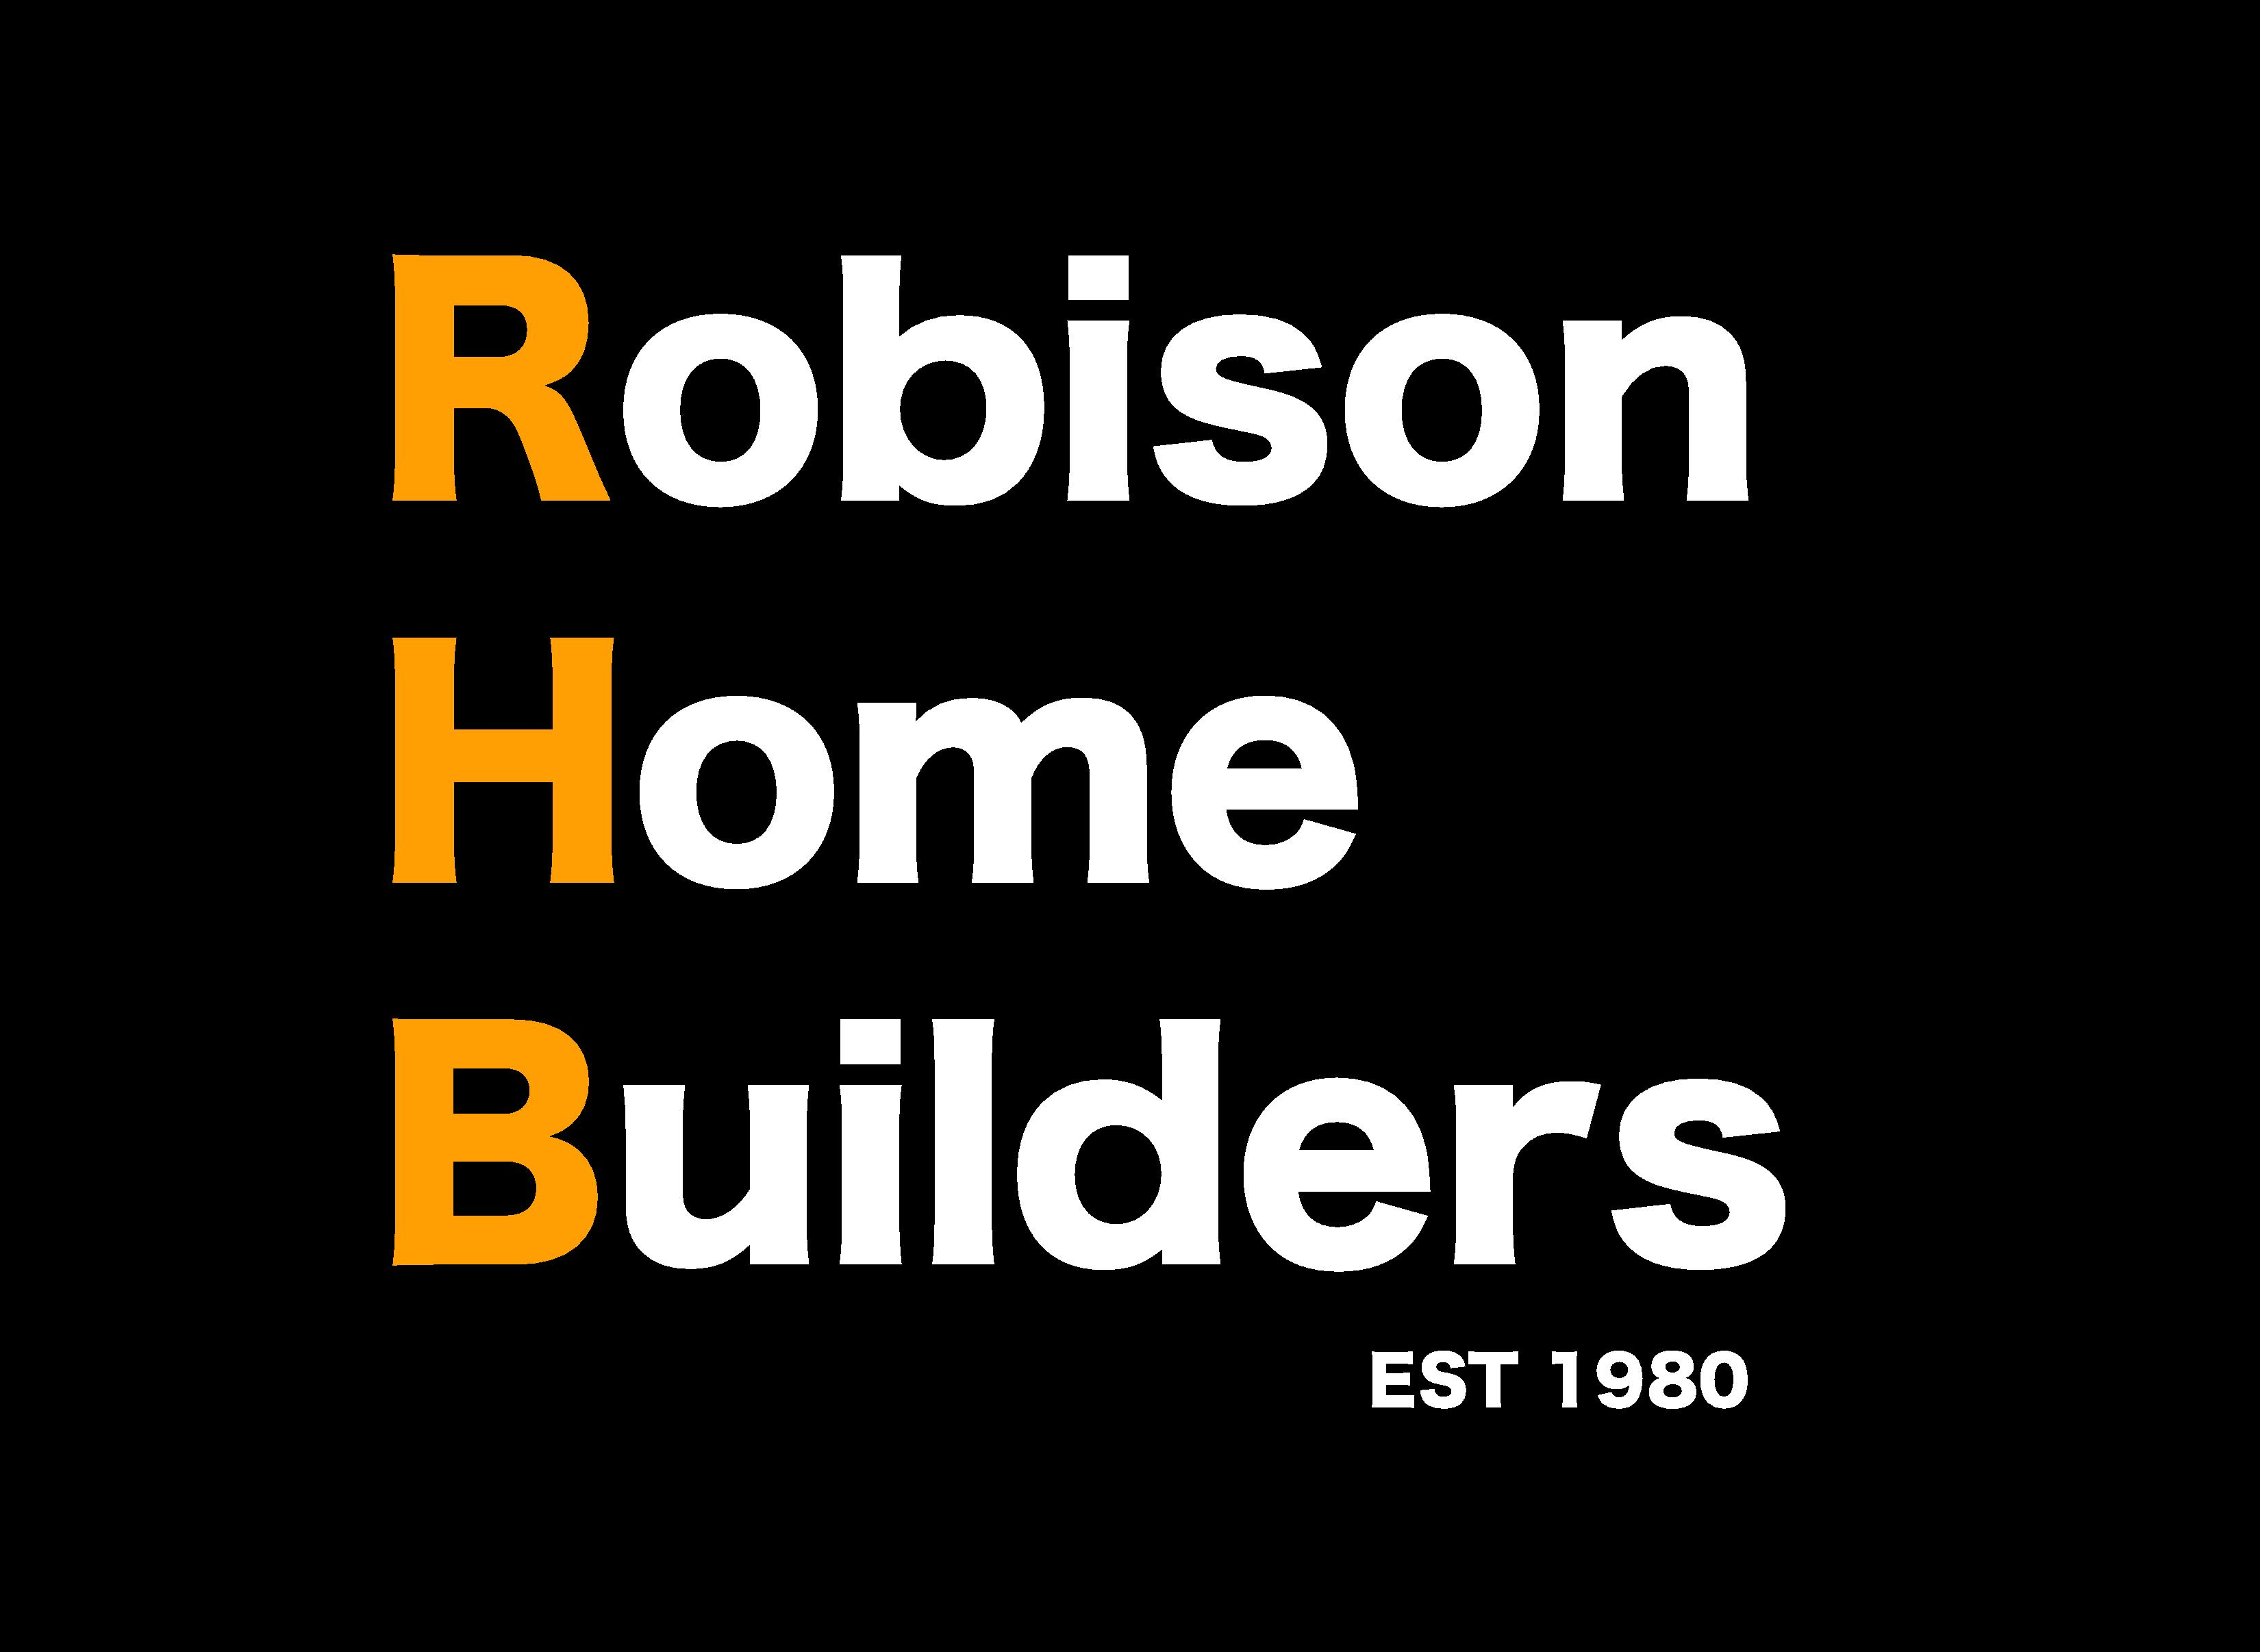 Robison Home Builders